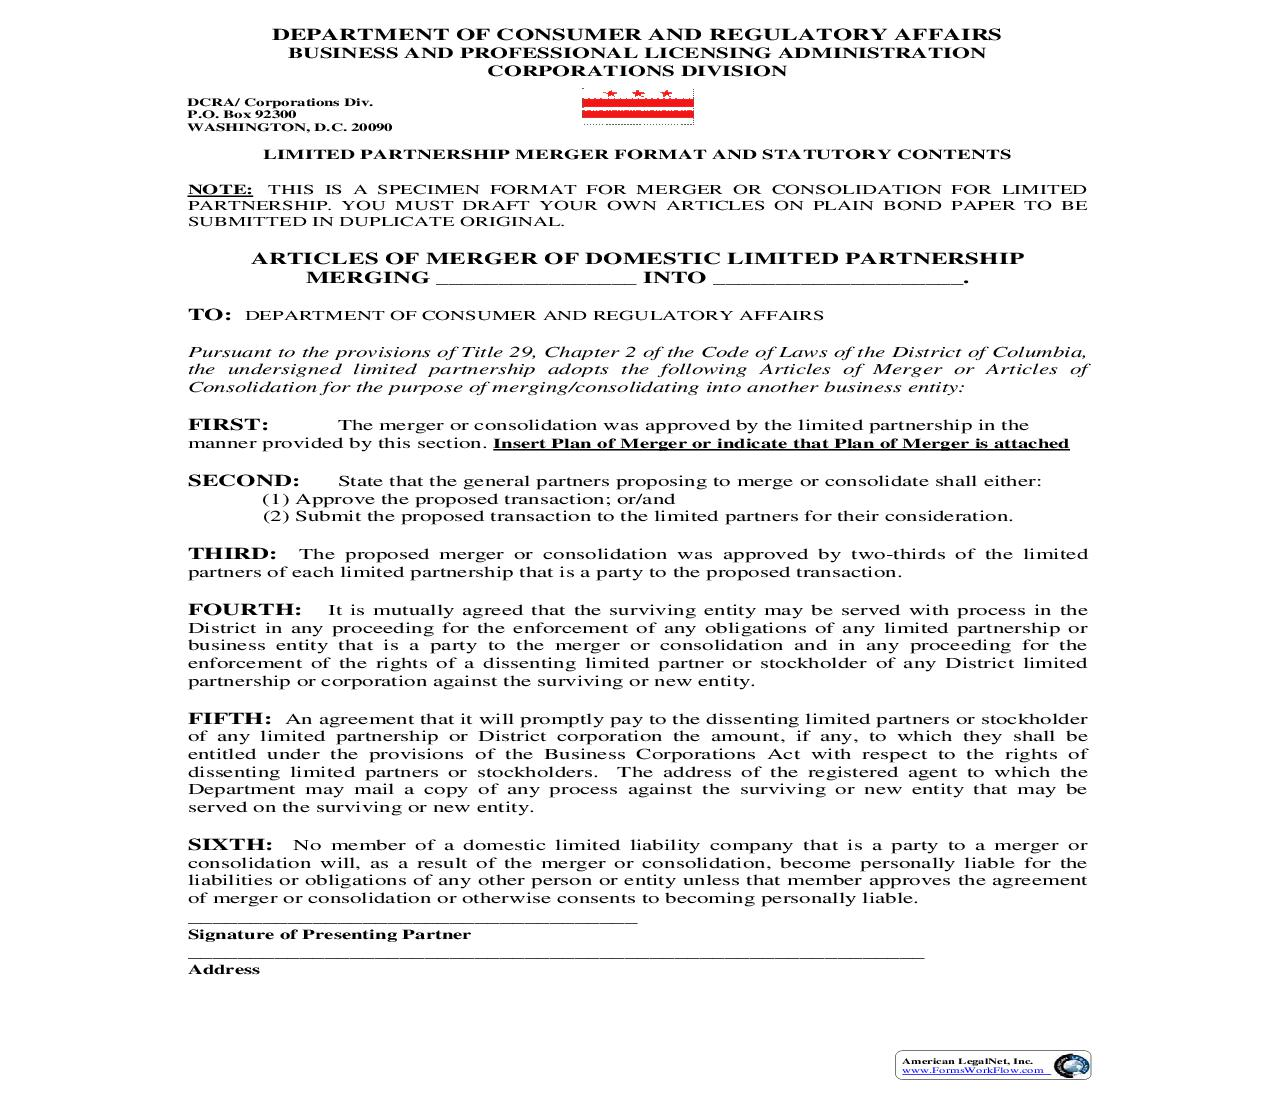 Articles Of Merger Of Domestic Limited Partnership Merging Into | Pdf Fpdf Doc Docx | District Of Columbia